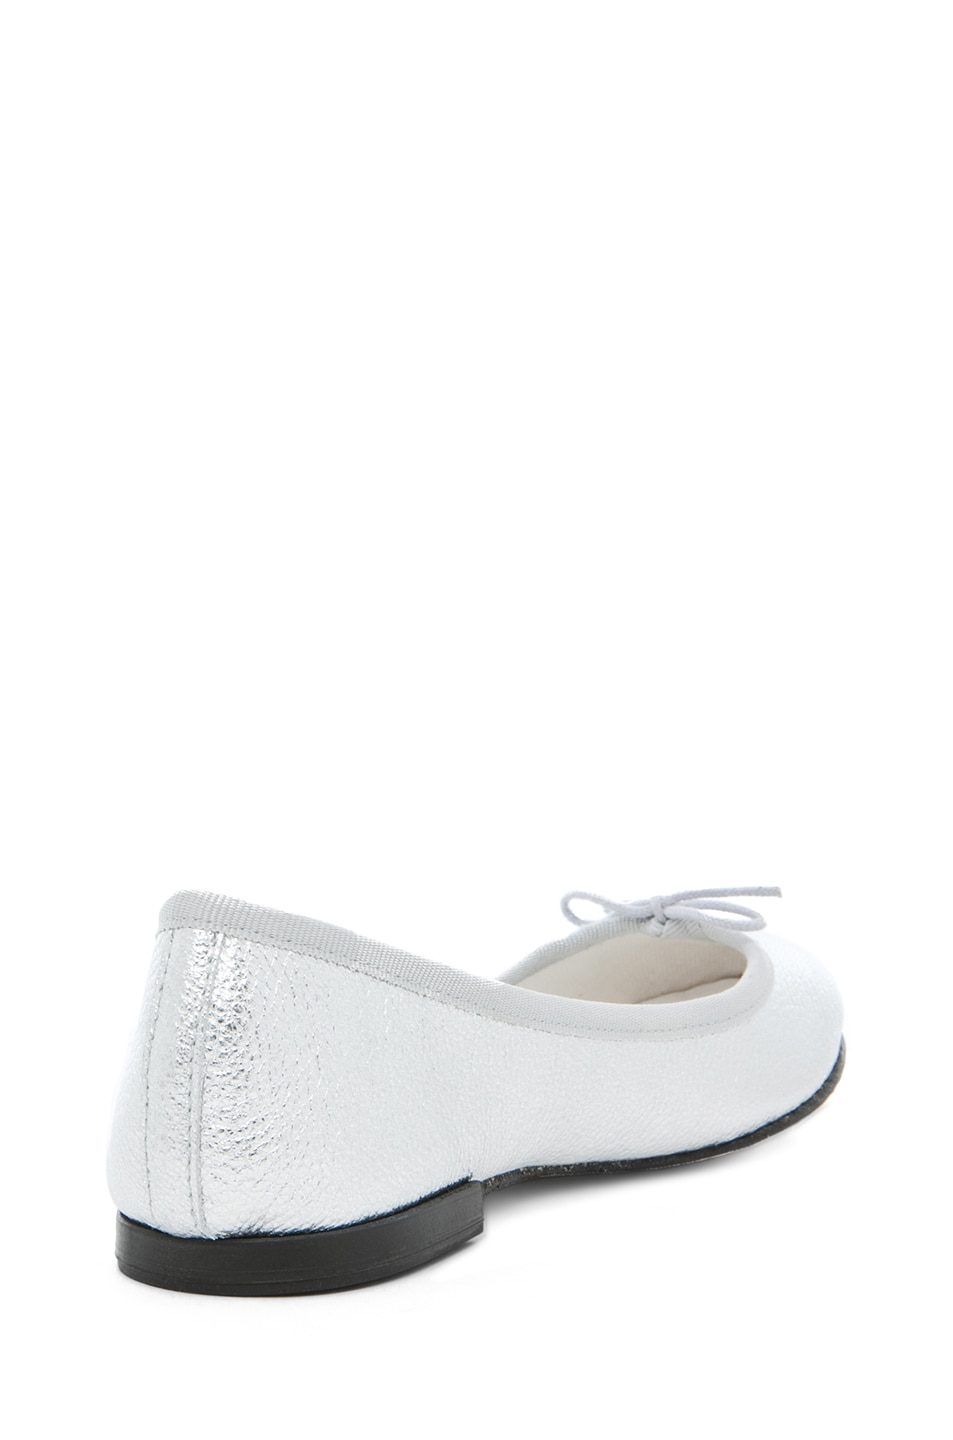 Image 3 of Repetto Leather Flat in Distressed Goatskin Silver